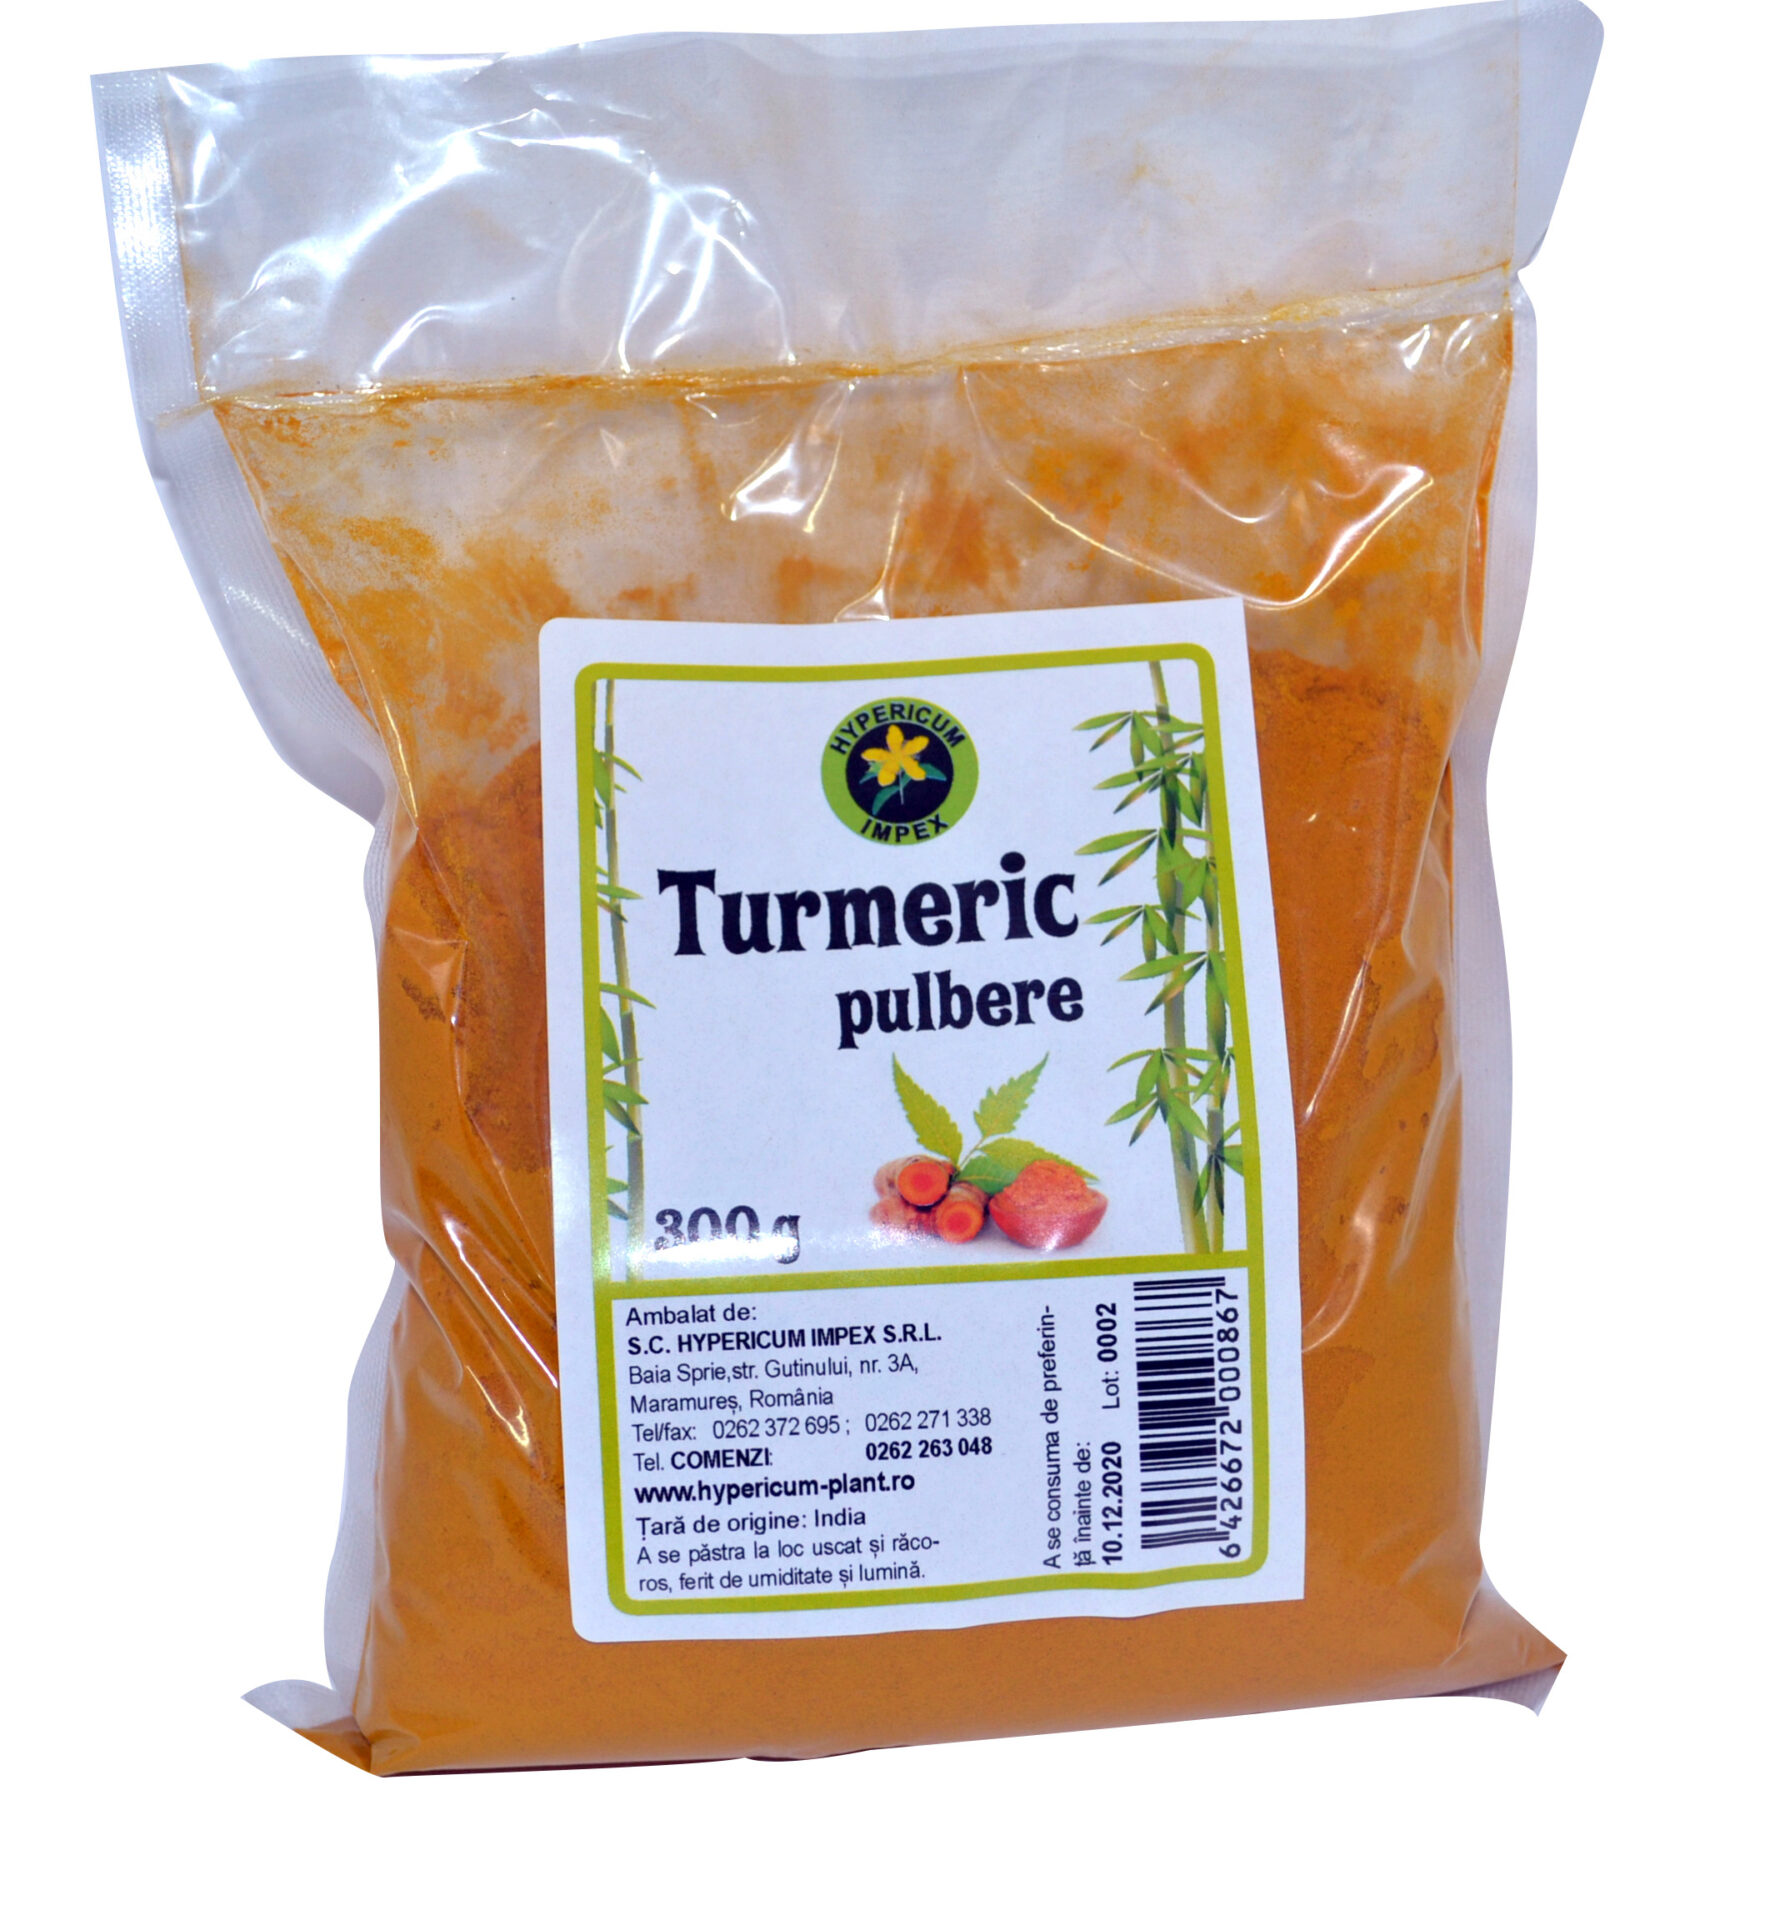 Turmeric Pulbere 300g